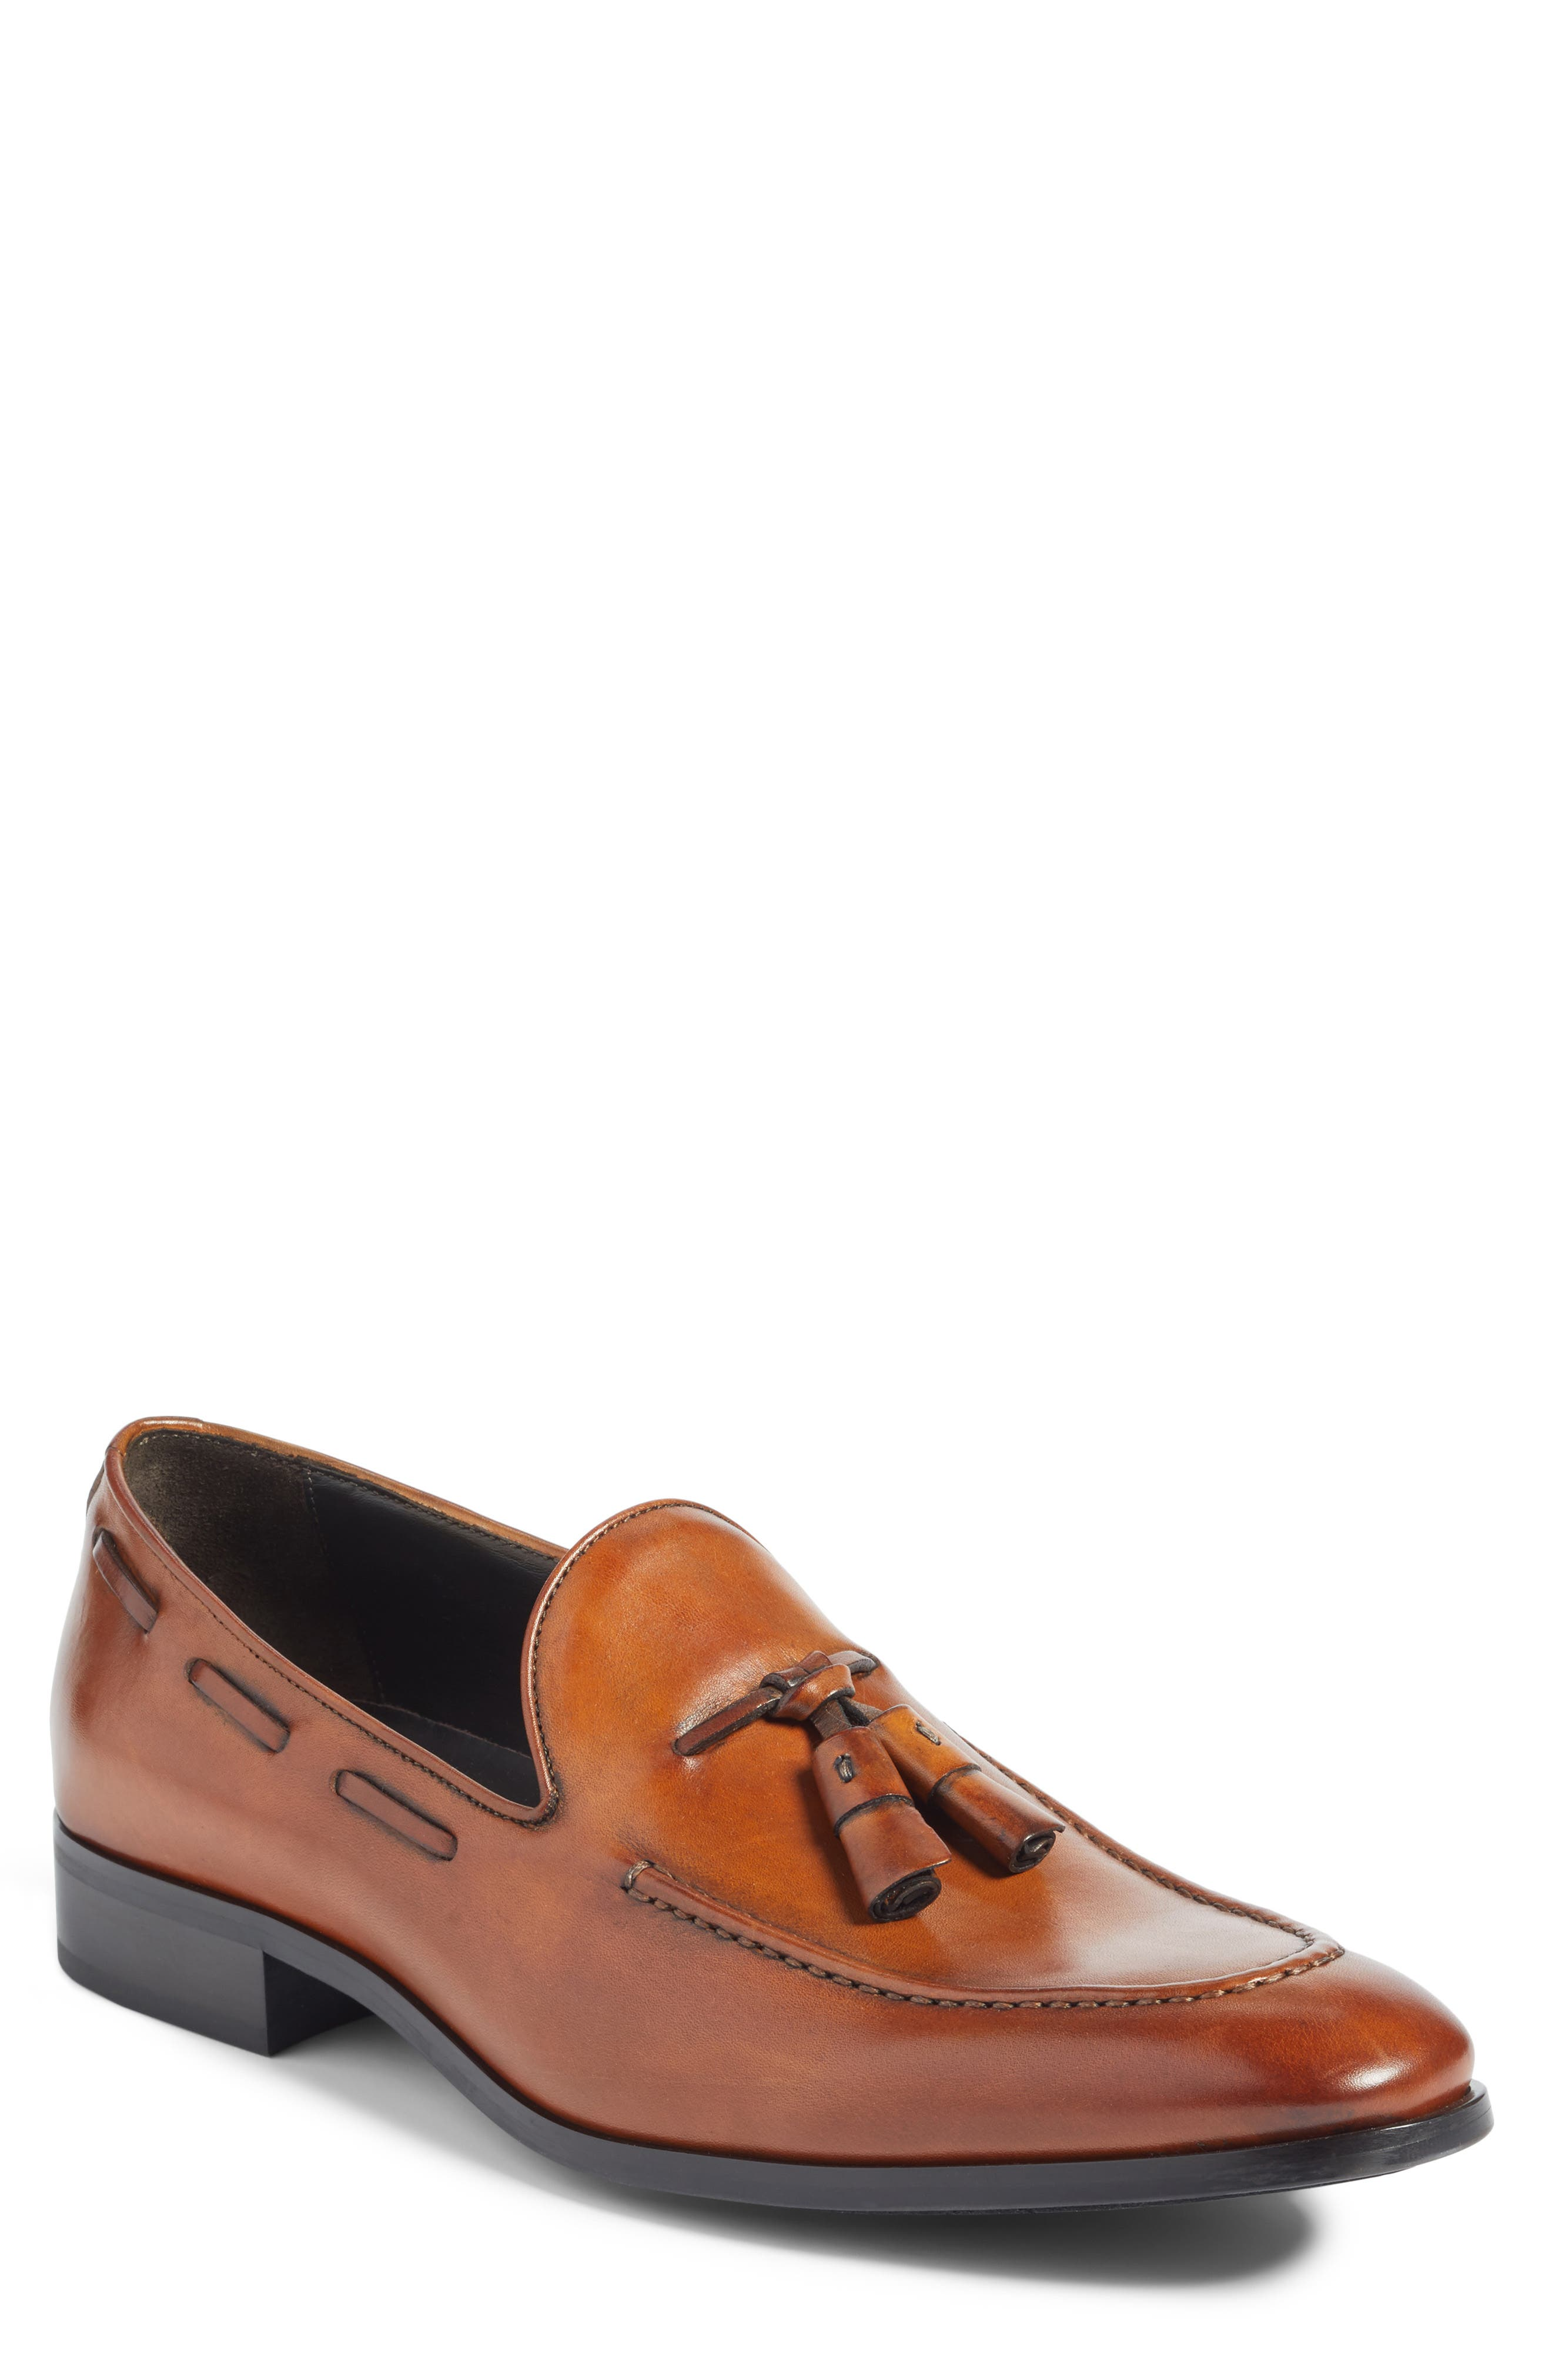 Barclay Tassel Loafer,                         Main,                         color, Cognac Leather